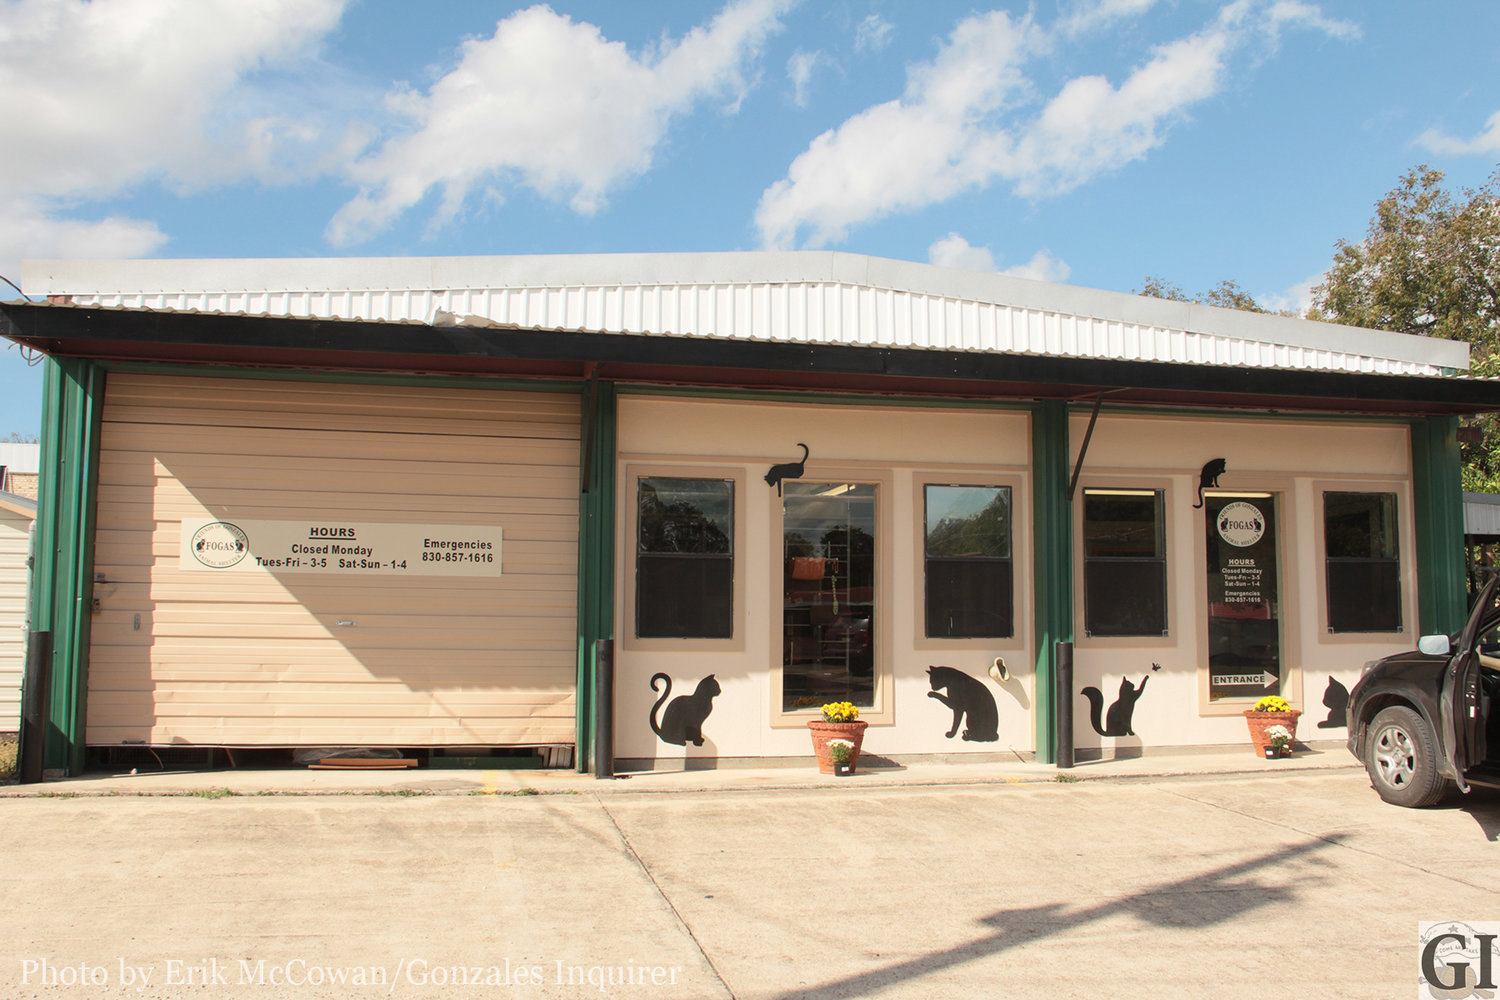 The Friends of Gonzales Animal Shelter has received some needed improvements thanks to generous volunteers, such as a new paint and signage to make the place more noticeable.